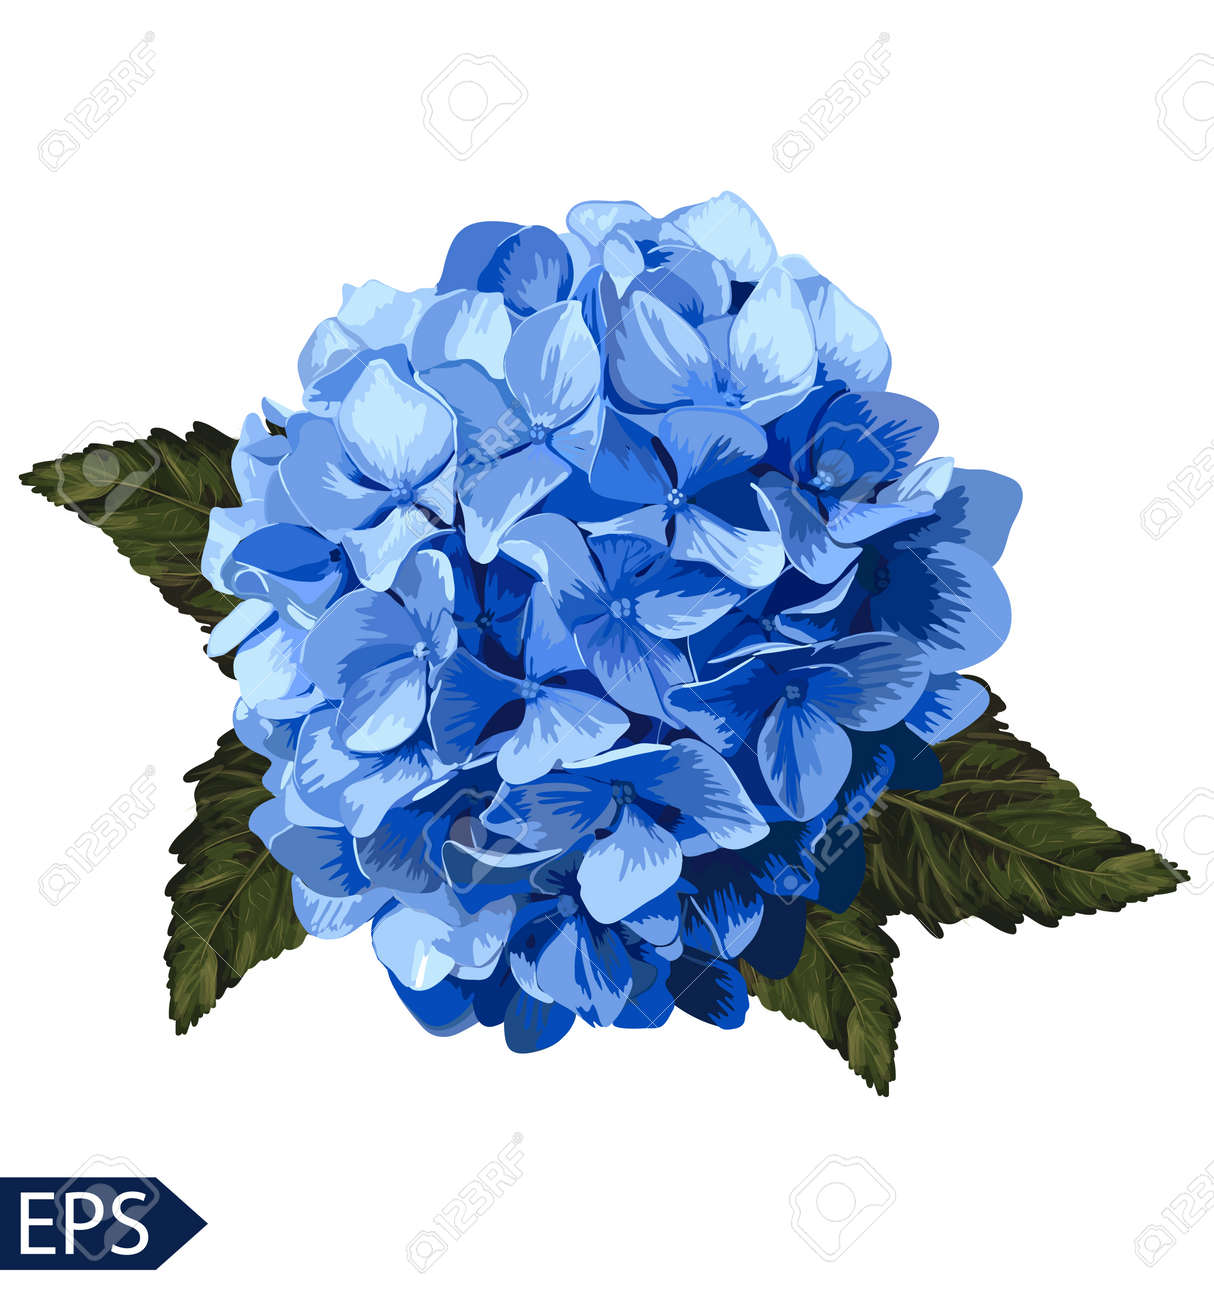 Vector blue realistic hydrangea, lavender. Illustration of flowers. Vintage. Can be used for gift wrapping paper. EPS - 39808579